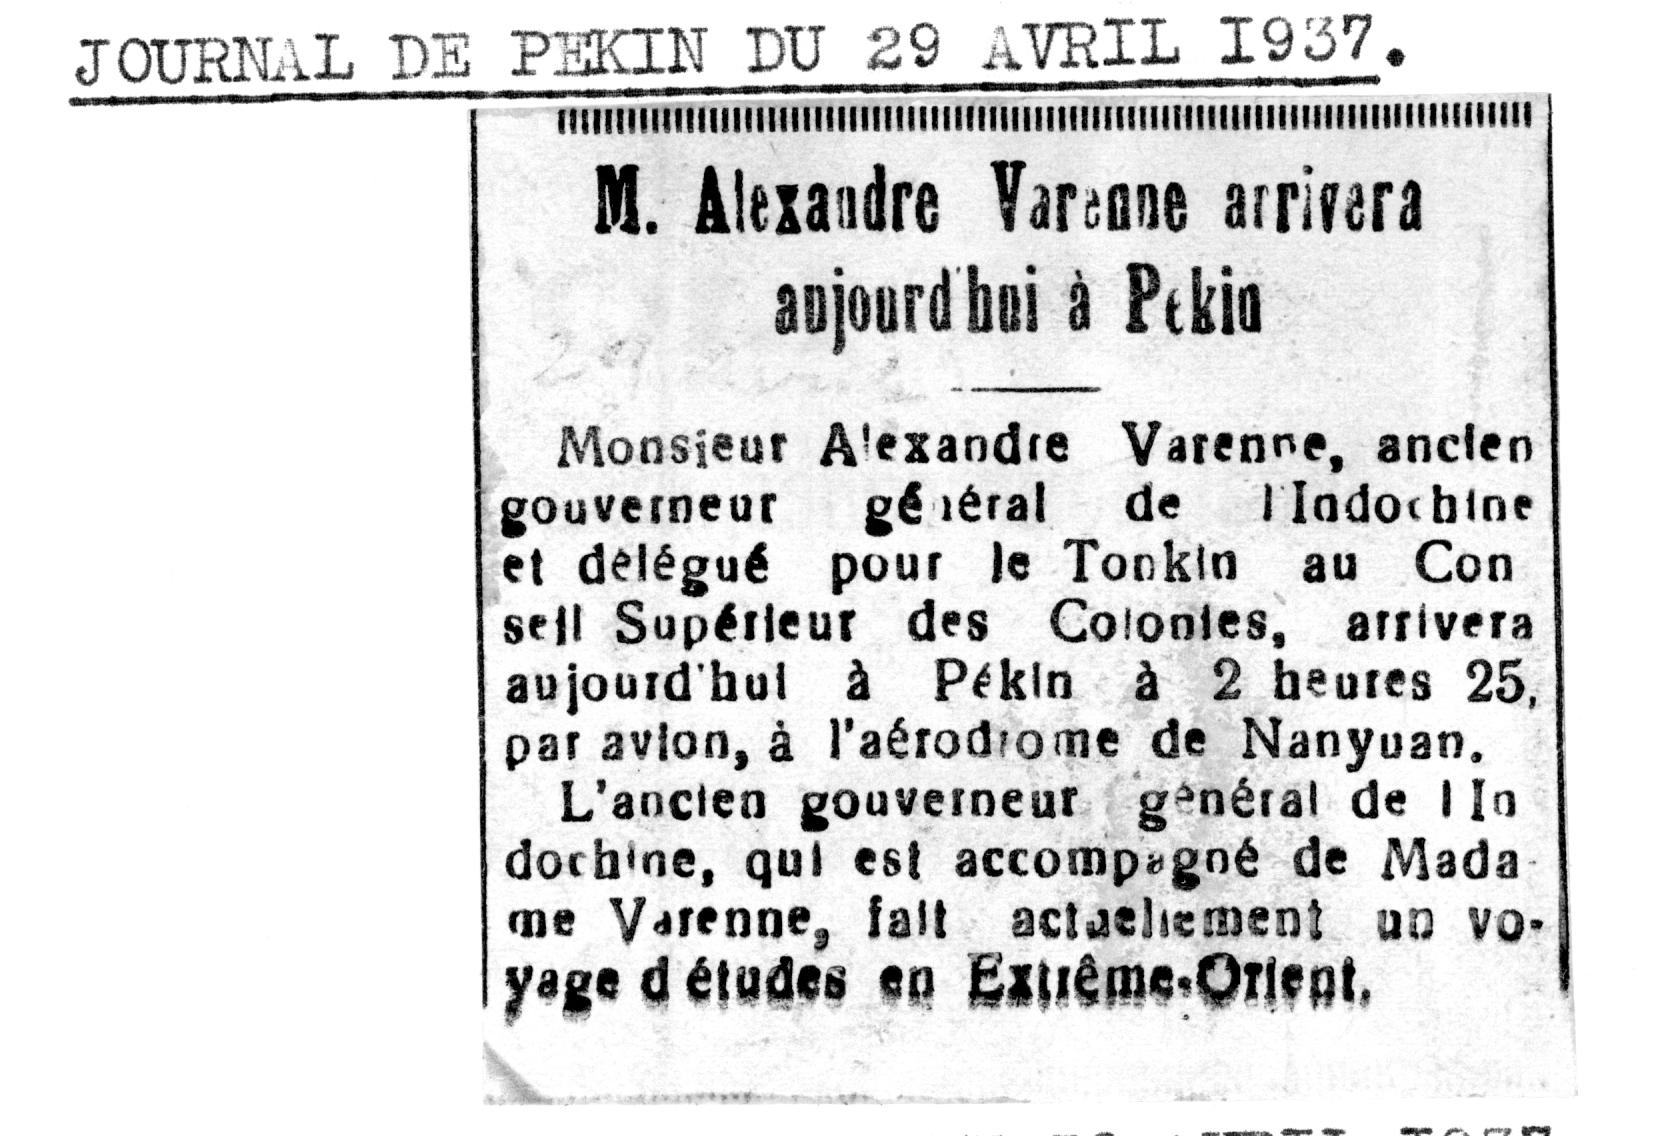 Journal de Pékin du 29 Avril 1937